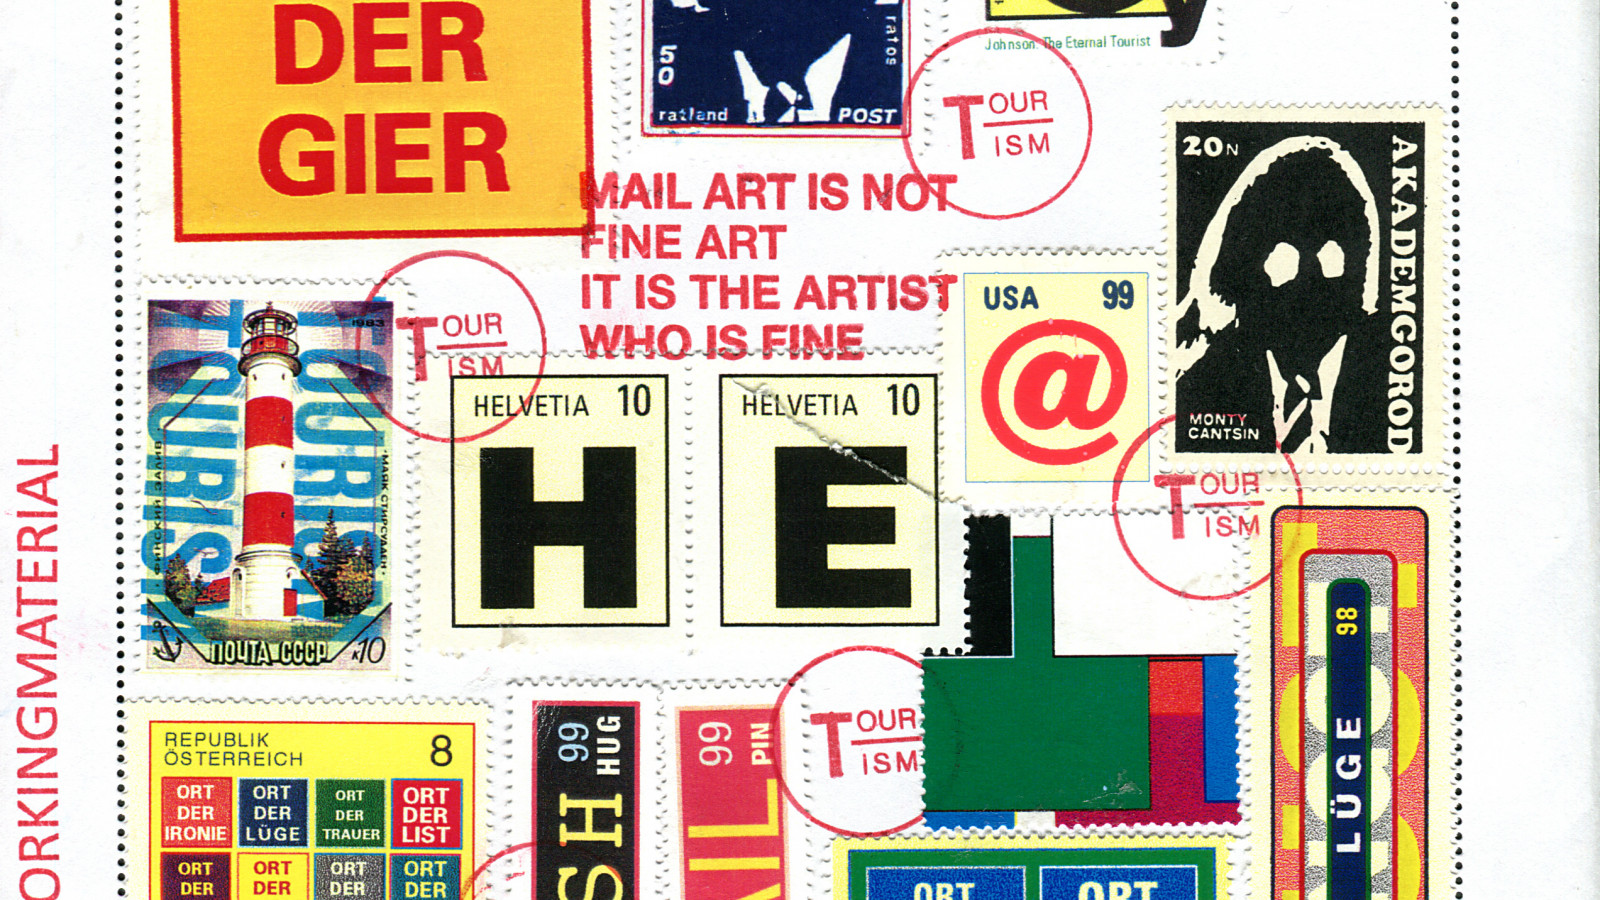 Mail art from H.R.Fricker